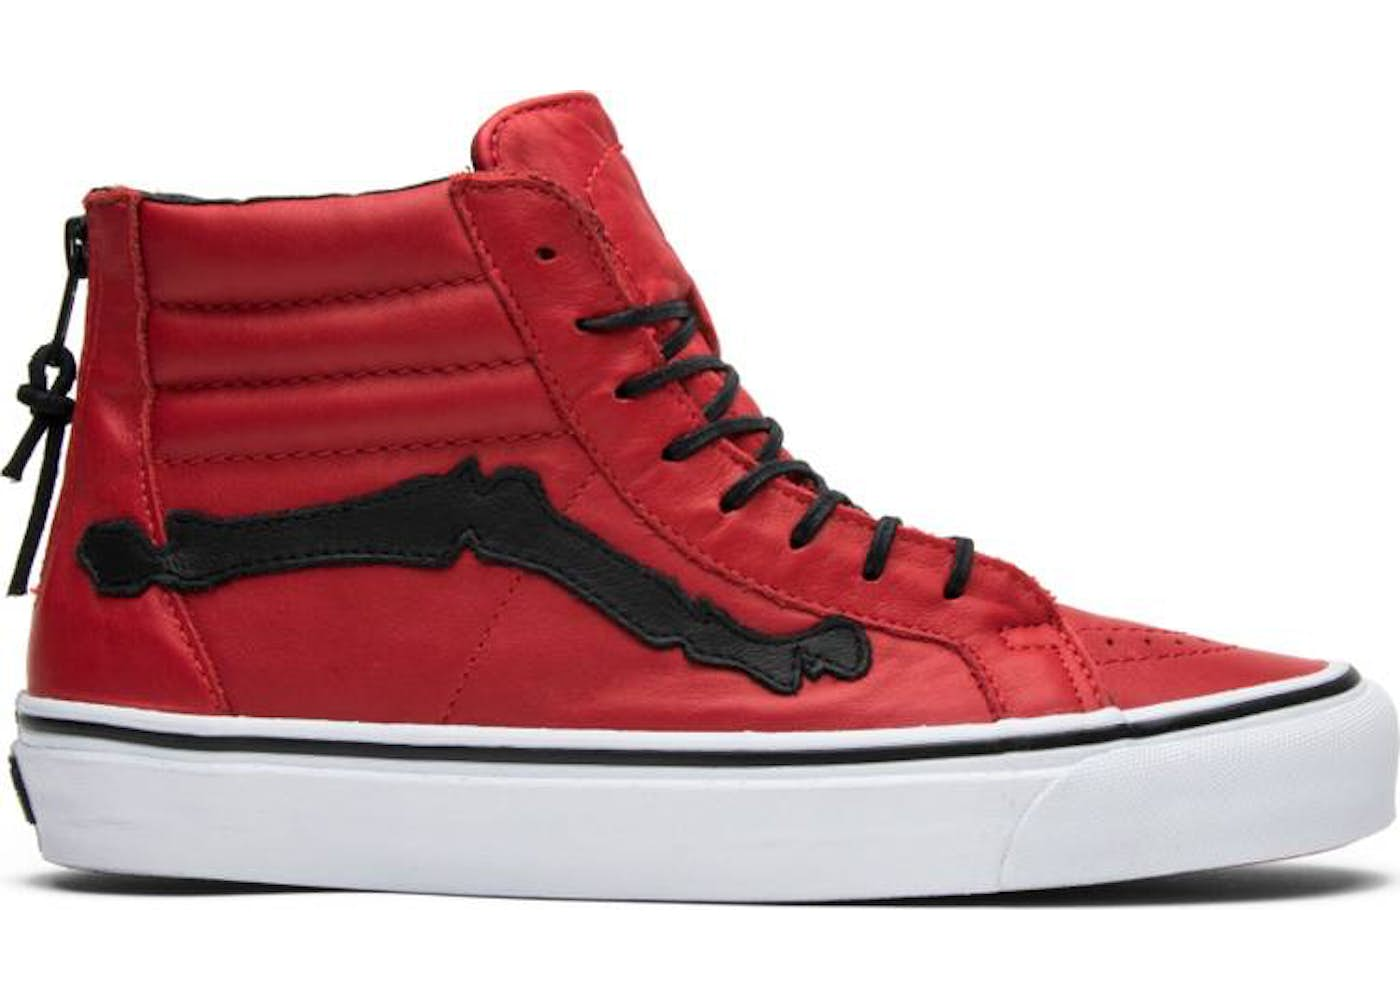 vans chili pepper